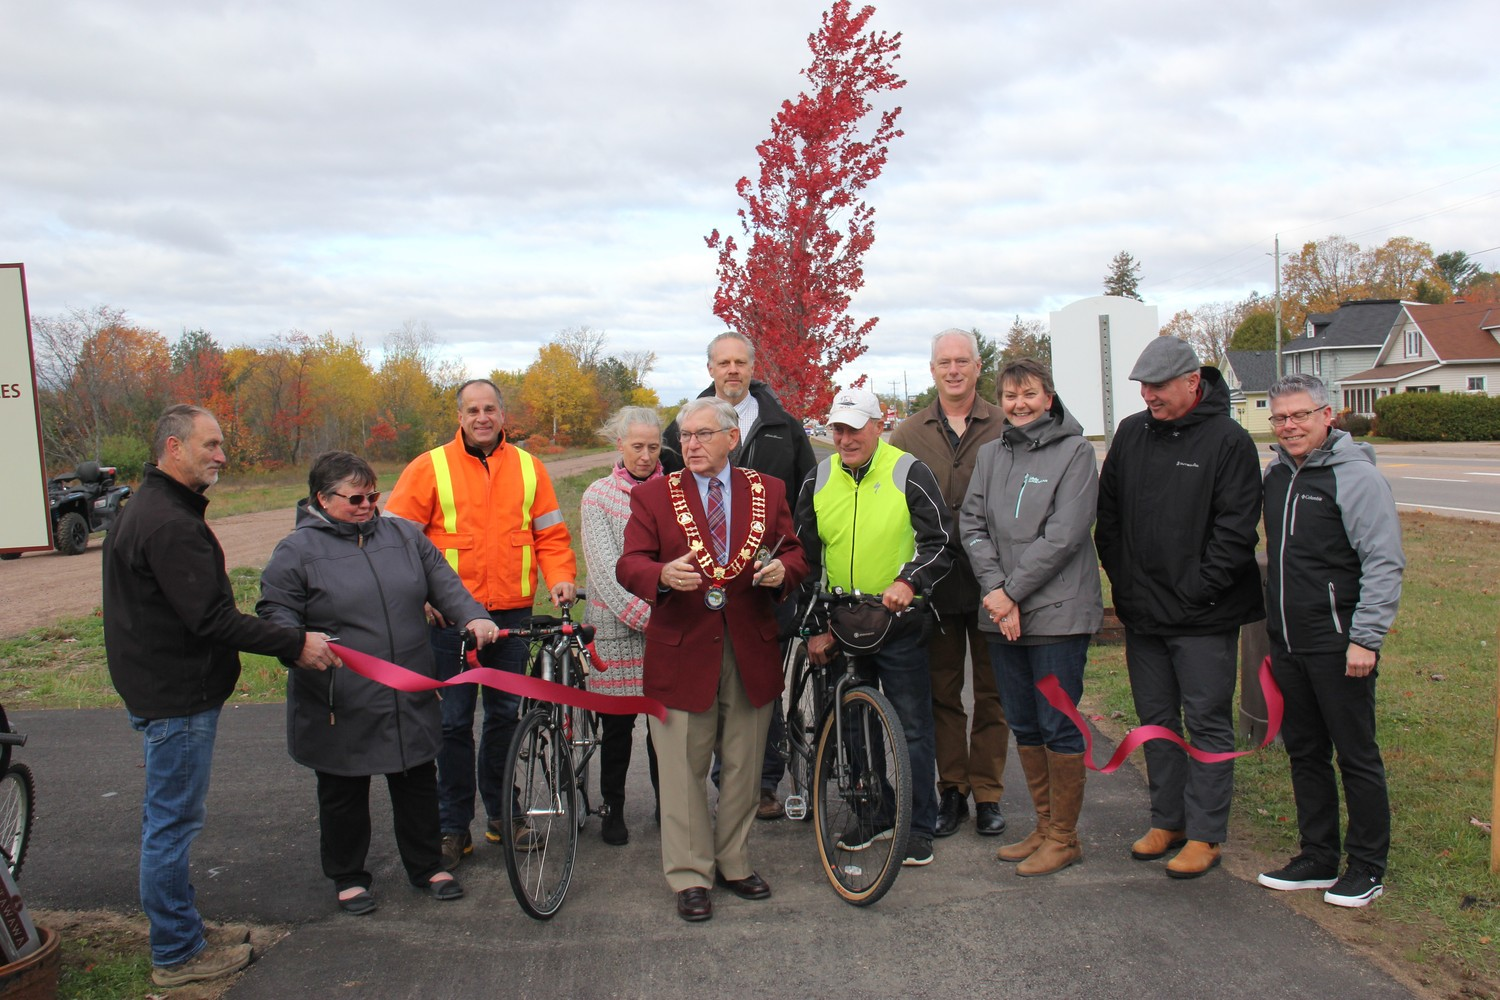 Official ribbon cutting in October, 2019 marked the opening of a twinned section of the Algonquin Trail through the urban commercial core of the Town of Petawawa. Members from the various groups involved in the trail attended. In the photo from left, Mark Reinert, Petawawa parks and recreation facilities supervisor, Sheila Clarke, Petawawa Accessibility Advisory Committee member, David Unrau (Petawawa public works director), Laura Lapinskie, constituency assistant to MPP John Yakabuski, Petawawa Mayor Bob Sweet, Jason Davis, manager of forestry and GIS services with Renfrew County, Ron Moss, Ottawa Valley Cycling and Active Transportation Alliance (OVCATA) secretary, Petawawa Councillor James Carmody, Dana Lawson, Garrison Petawawa Personnel Support Programs (PSP) health promotion manager, Kelly Williams, Petawawa community services director, and Petawawa CAO/clerk Dan Scissons. Photo by Anthony Dixon, Pembroke Observer, with permission.